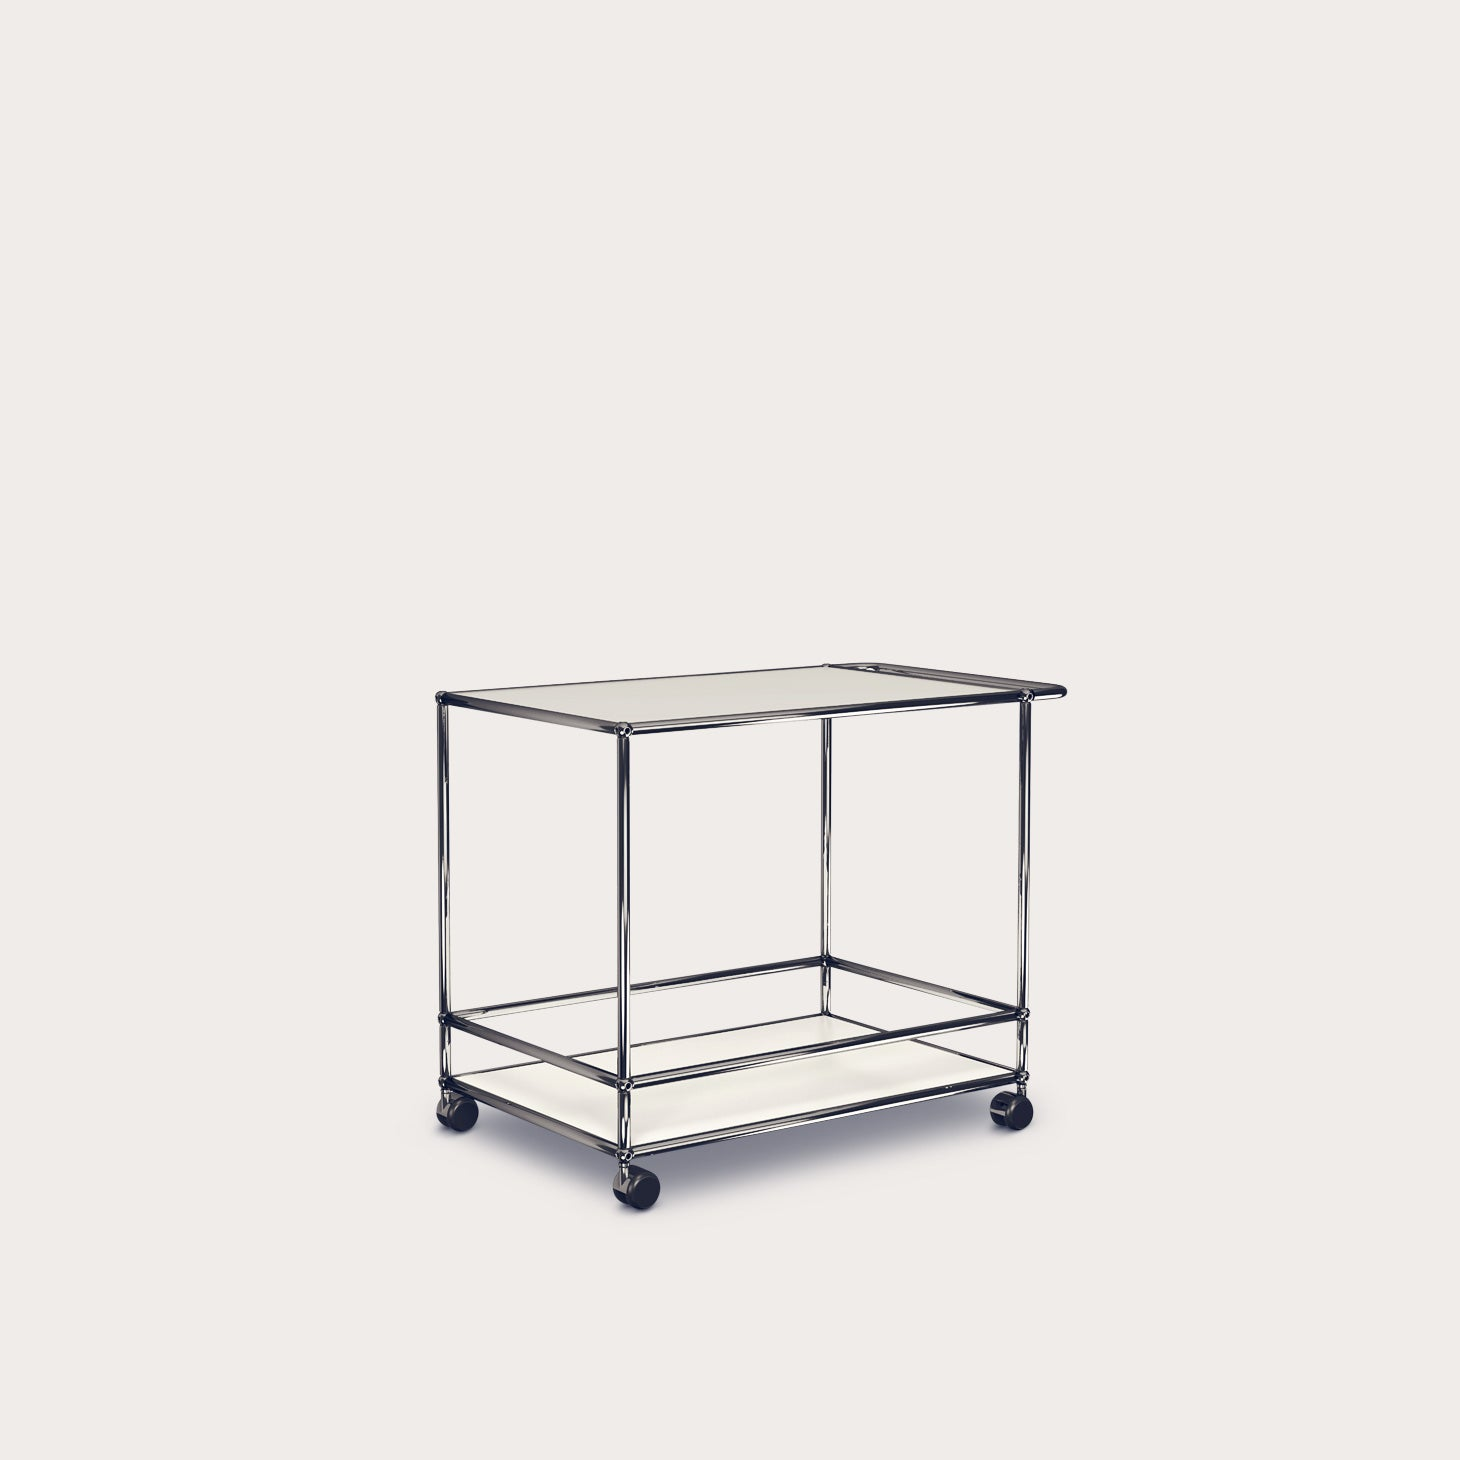 Haller Serving Cart L Storage Fritz Haller Designer Furniture Sku: 000-180-20045